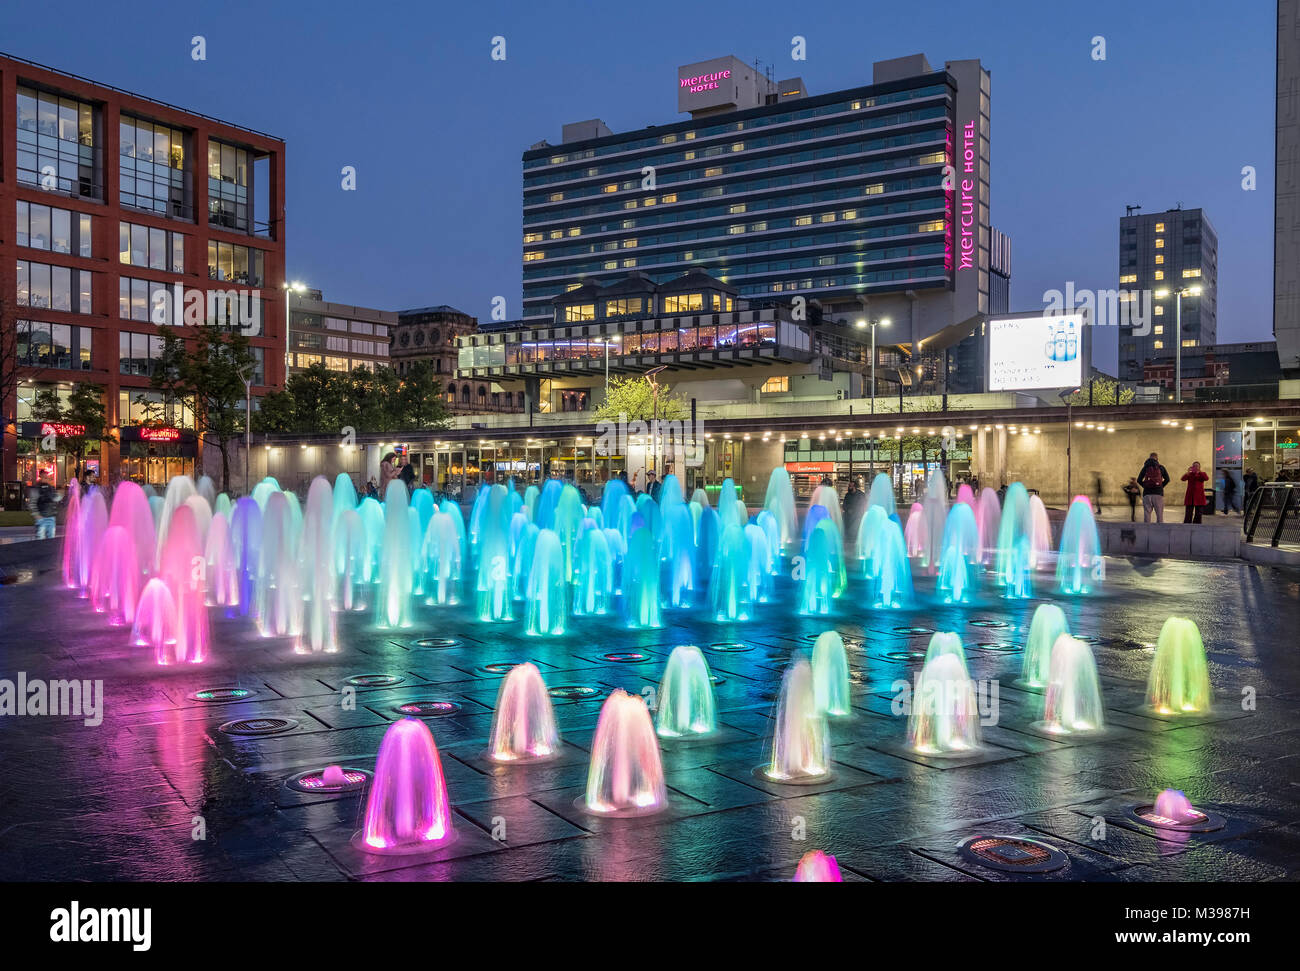 Coloured Fountain at night, Piccadilly Gardens, Manchester, Greater Manchester, England, UK - Stock Image